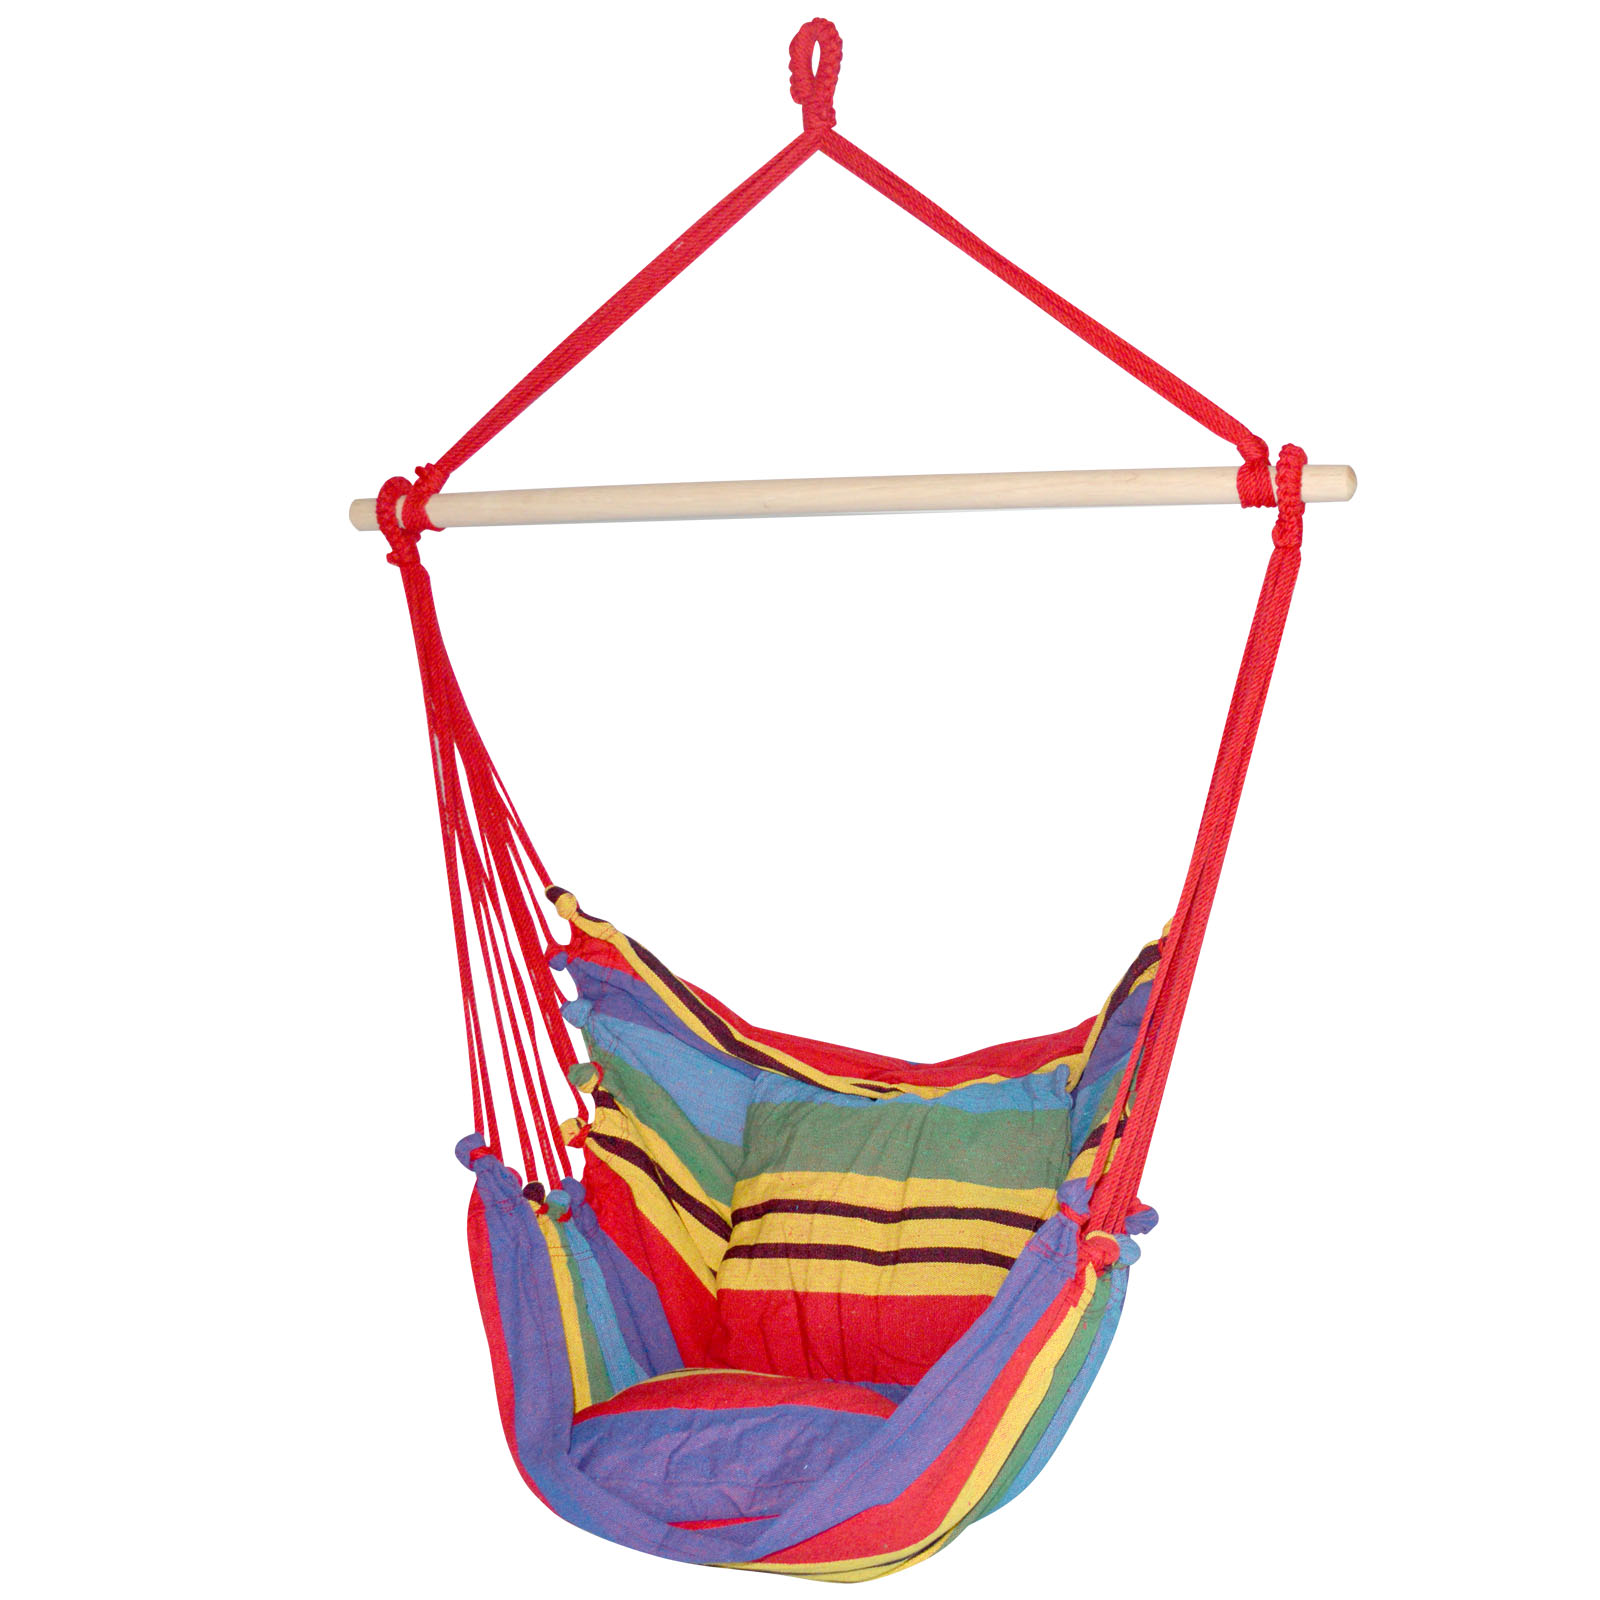 New Gardeon Hammock Swing Chair with Cushion - Multi-colour + Fast Free Shipping